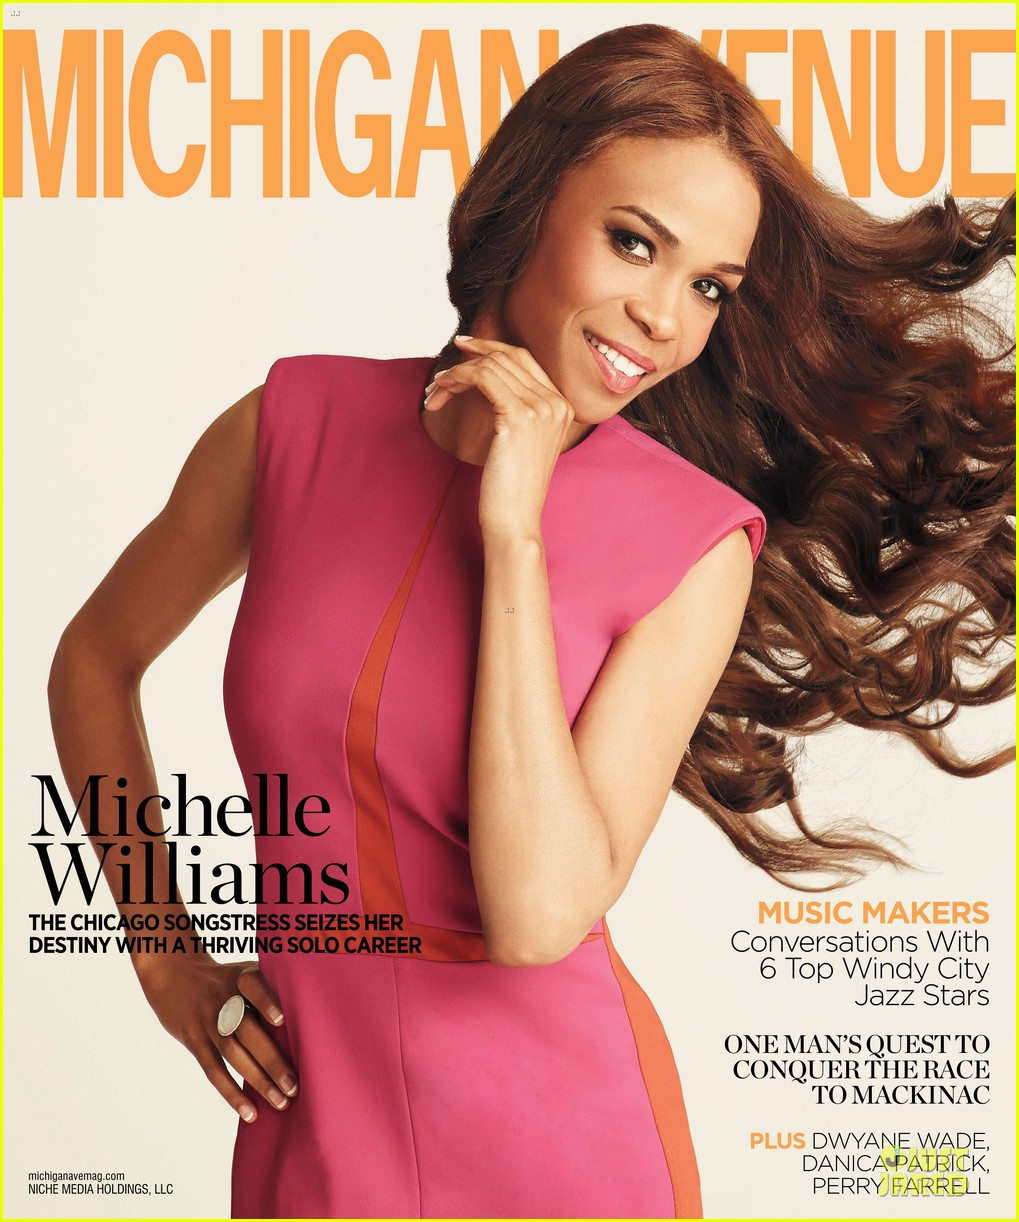 michelle williams covers michigan avenue magazine summer 2013 04